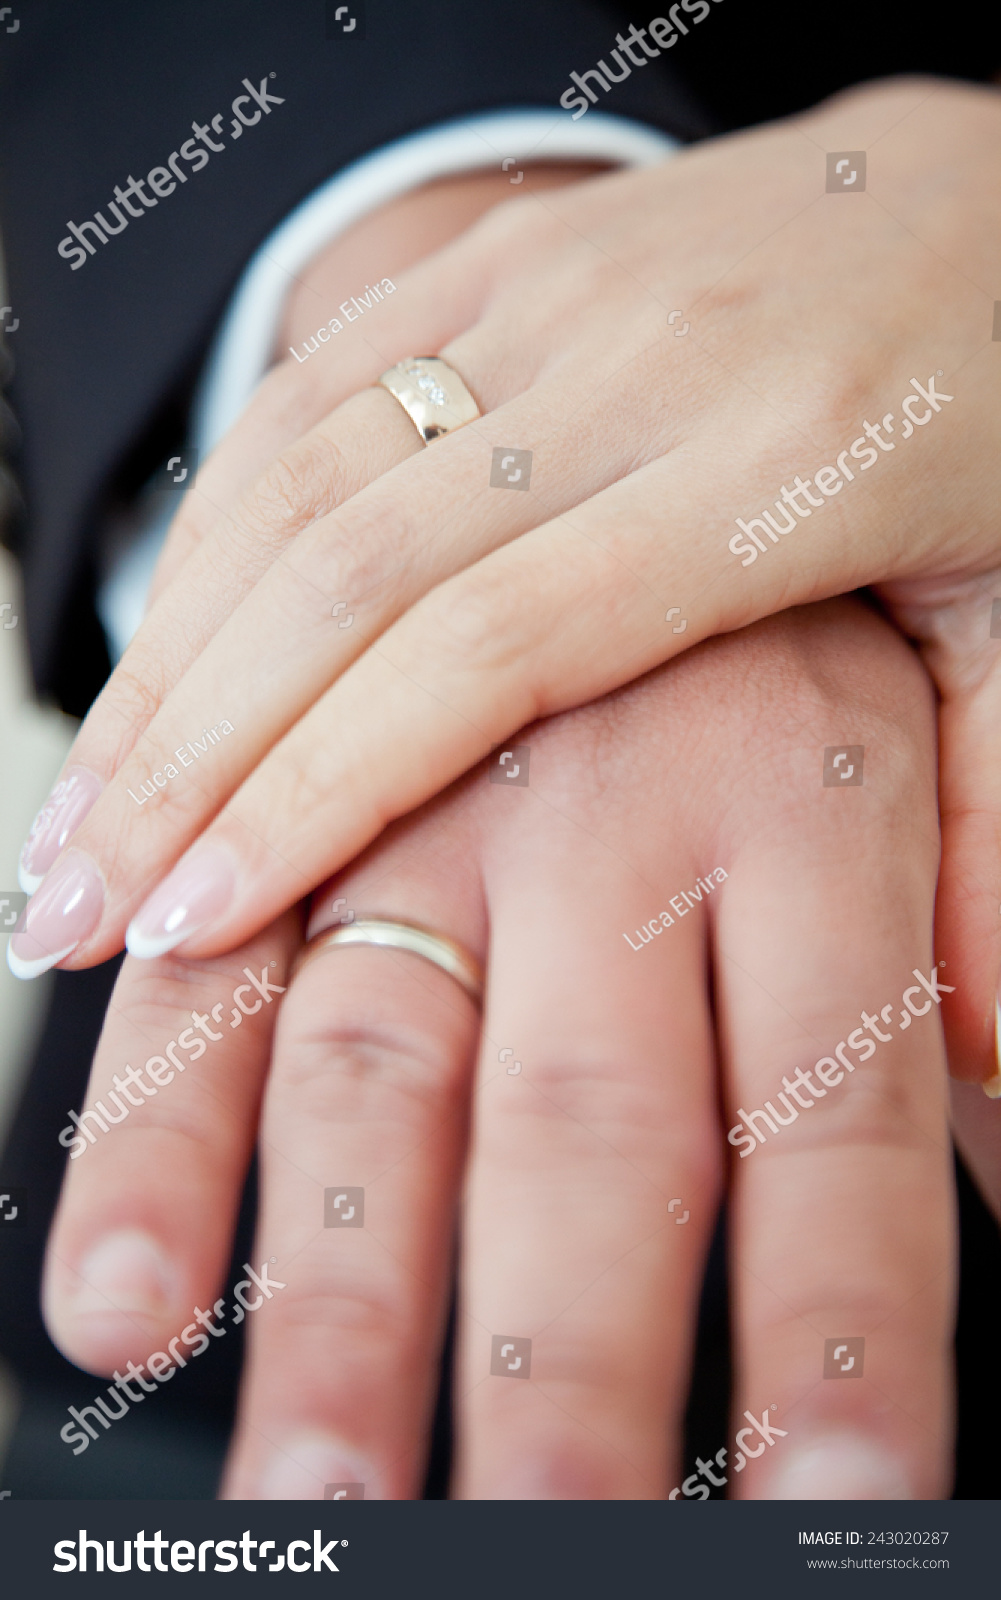 the bride and groom\'s hand close-up with wedding rings | EZ Canvas